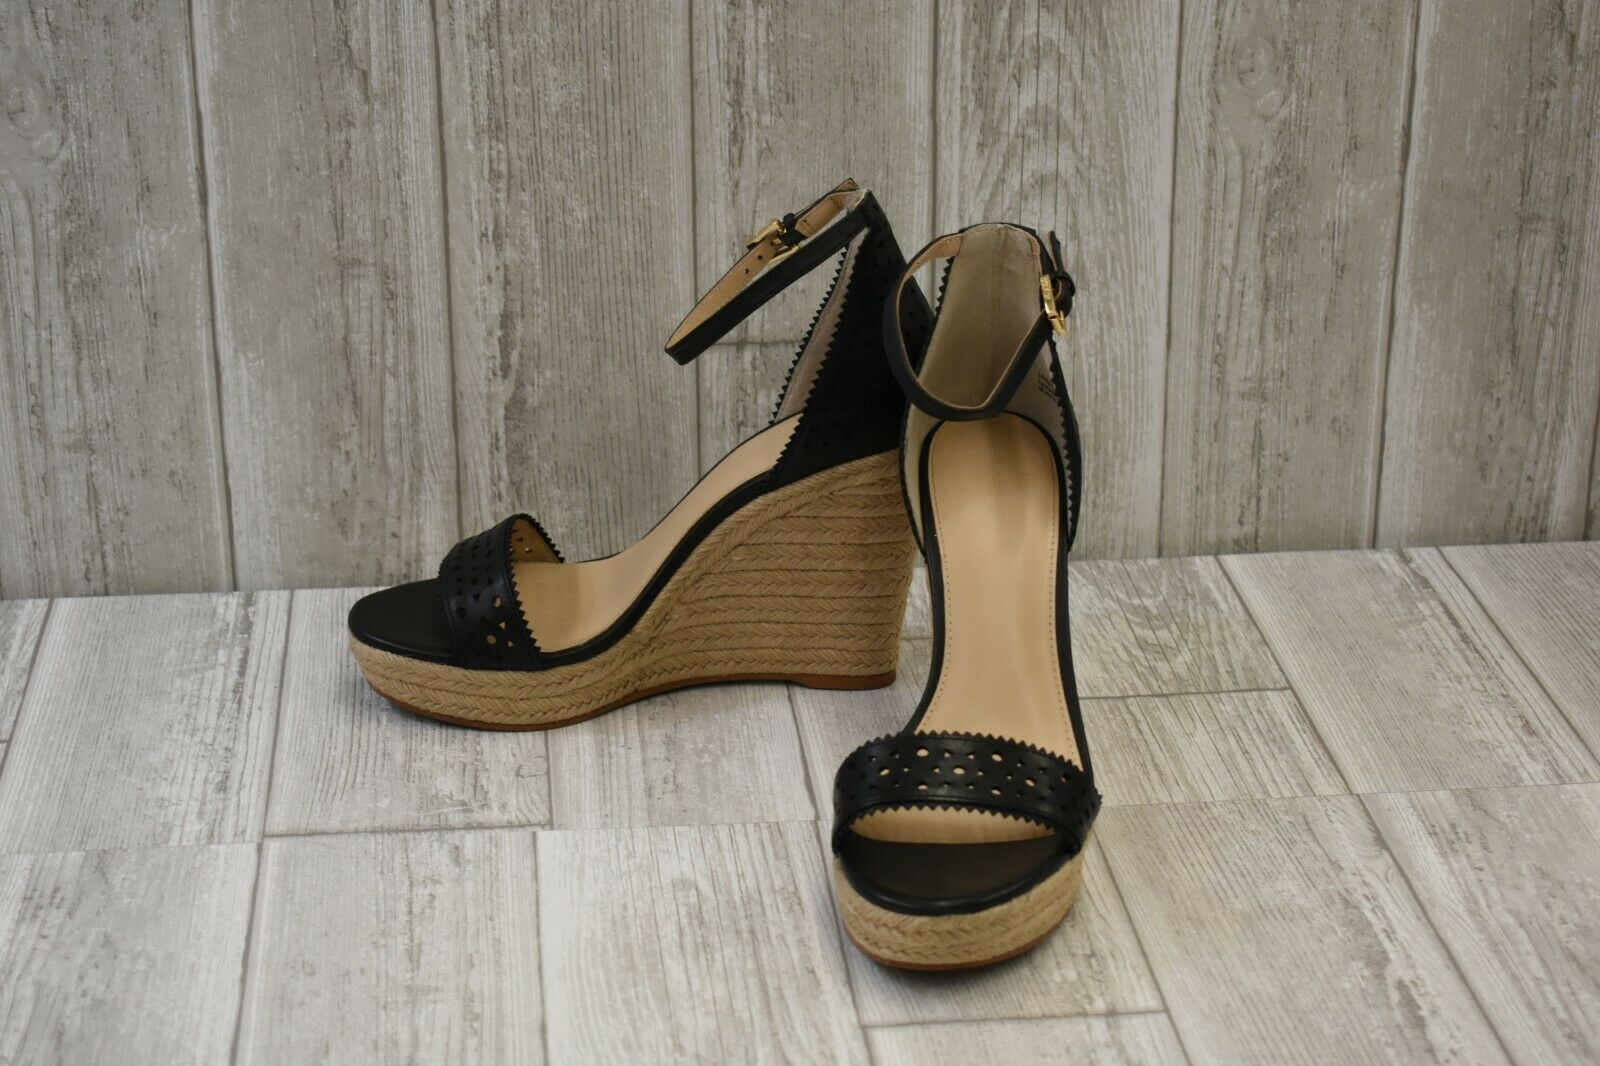 Botkier Jamie Leather Leather Leather Wedge Espadrille Sandals, Donna  Dimensione 10M, nero e6bc07